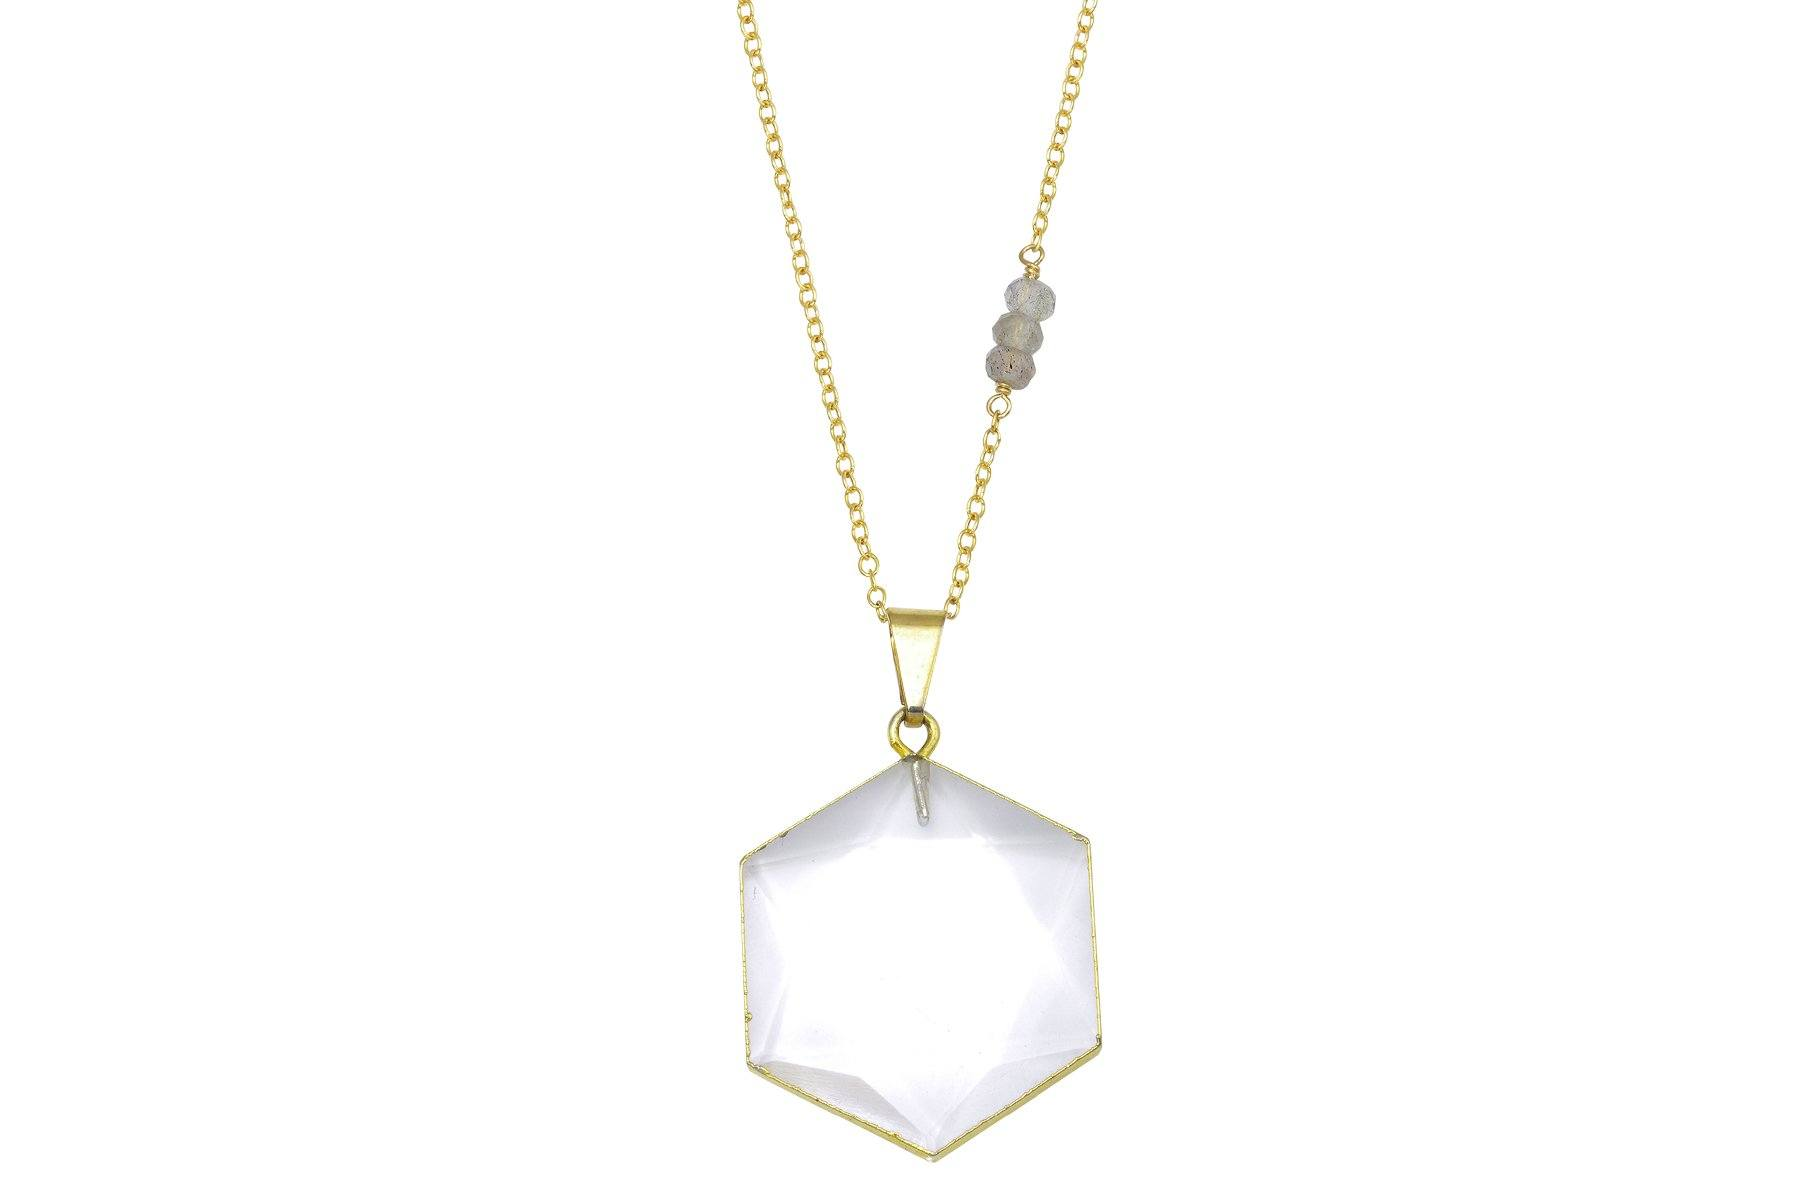 Harmonia Clear Quartz Necklace - a collaboration with Casey Van Zandt - Amanda K Lockrow